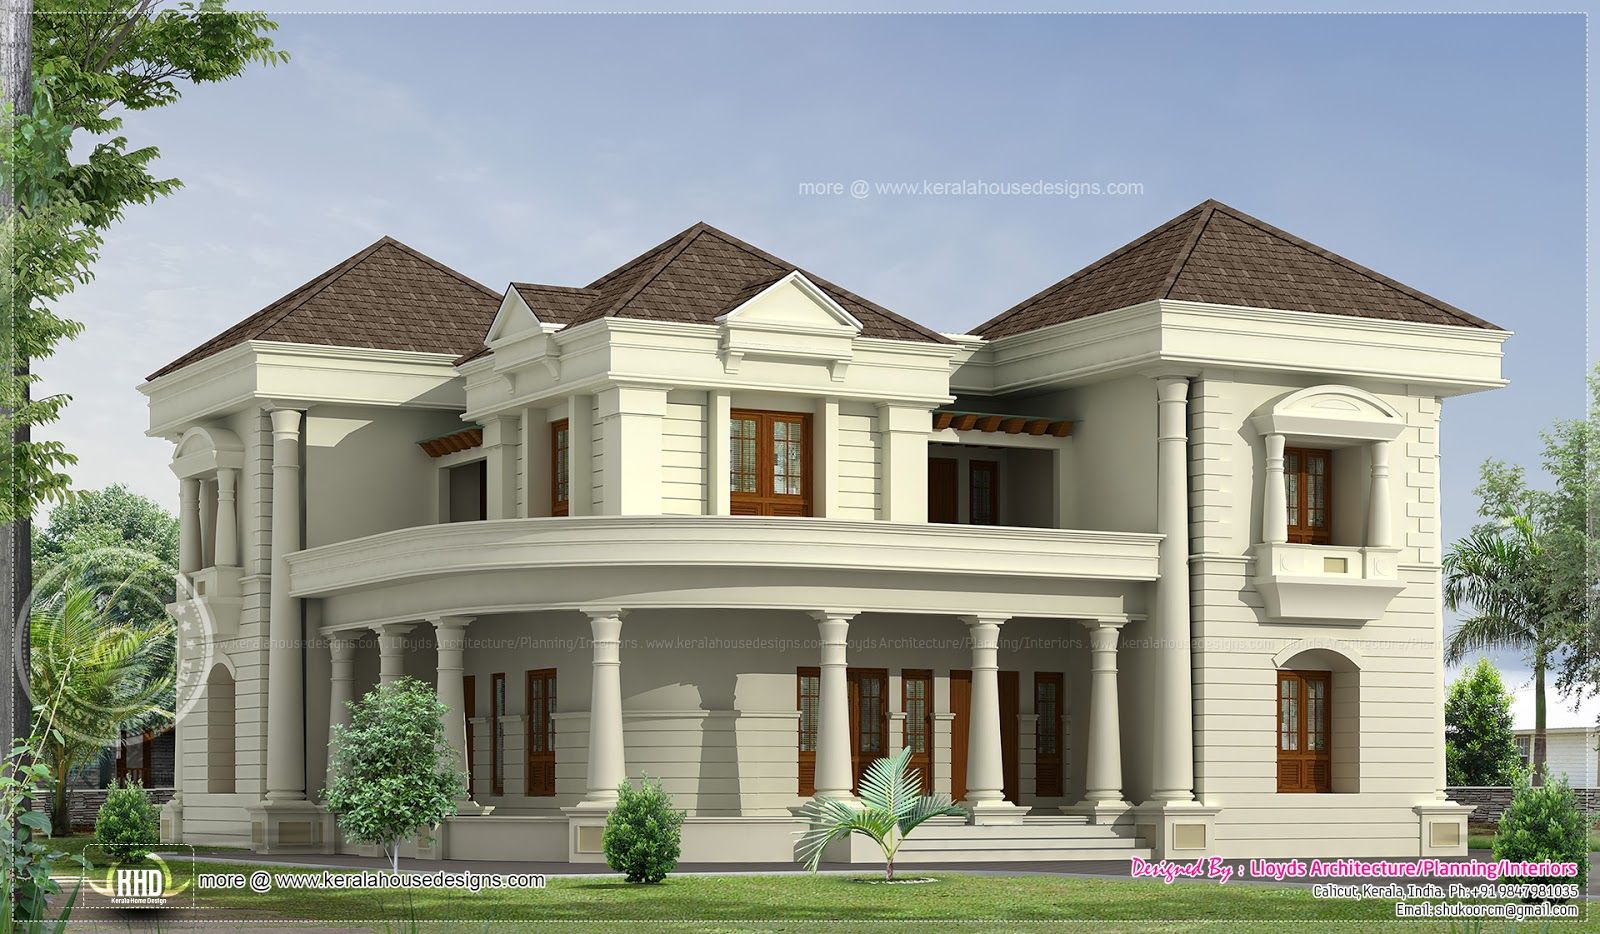 Modern bungalows bedroom luxurious bungalow floor plan for Bungalow house blueprints